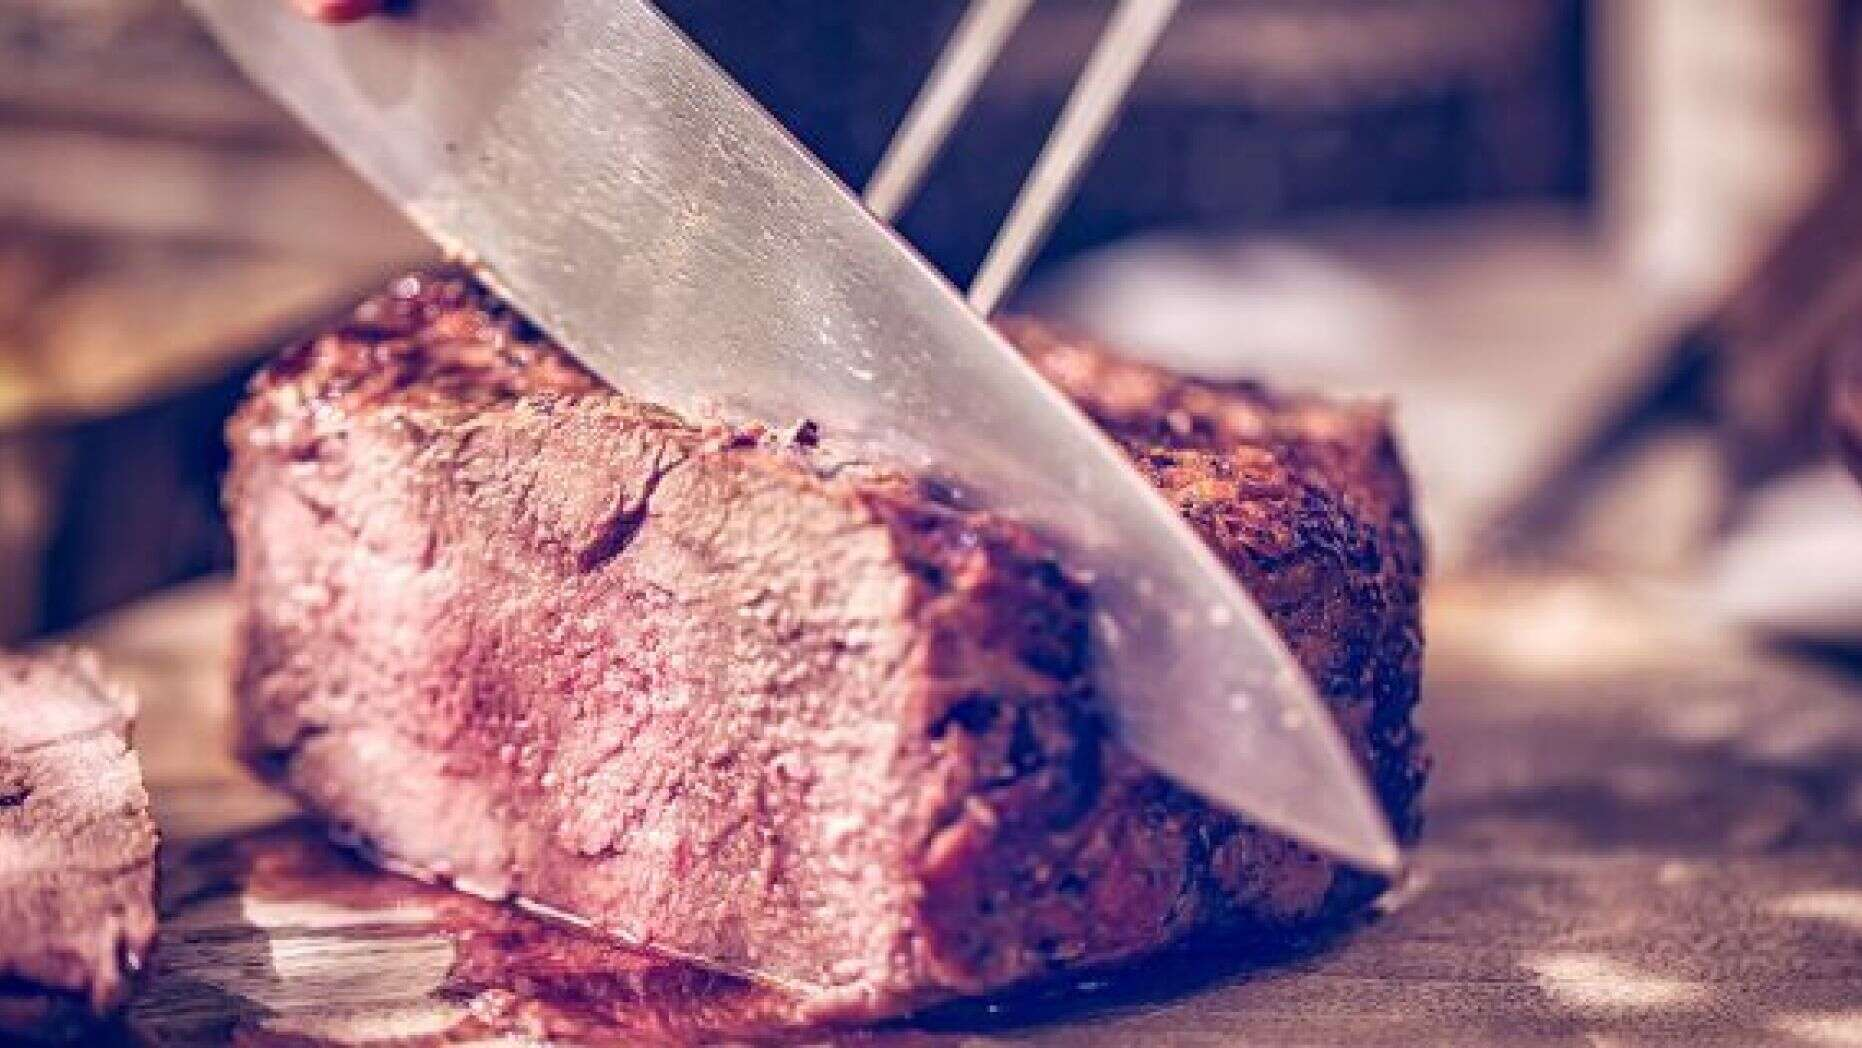 5 Expert Tips to Make Tough Meat Tender